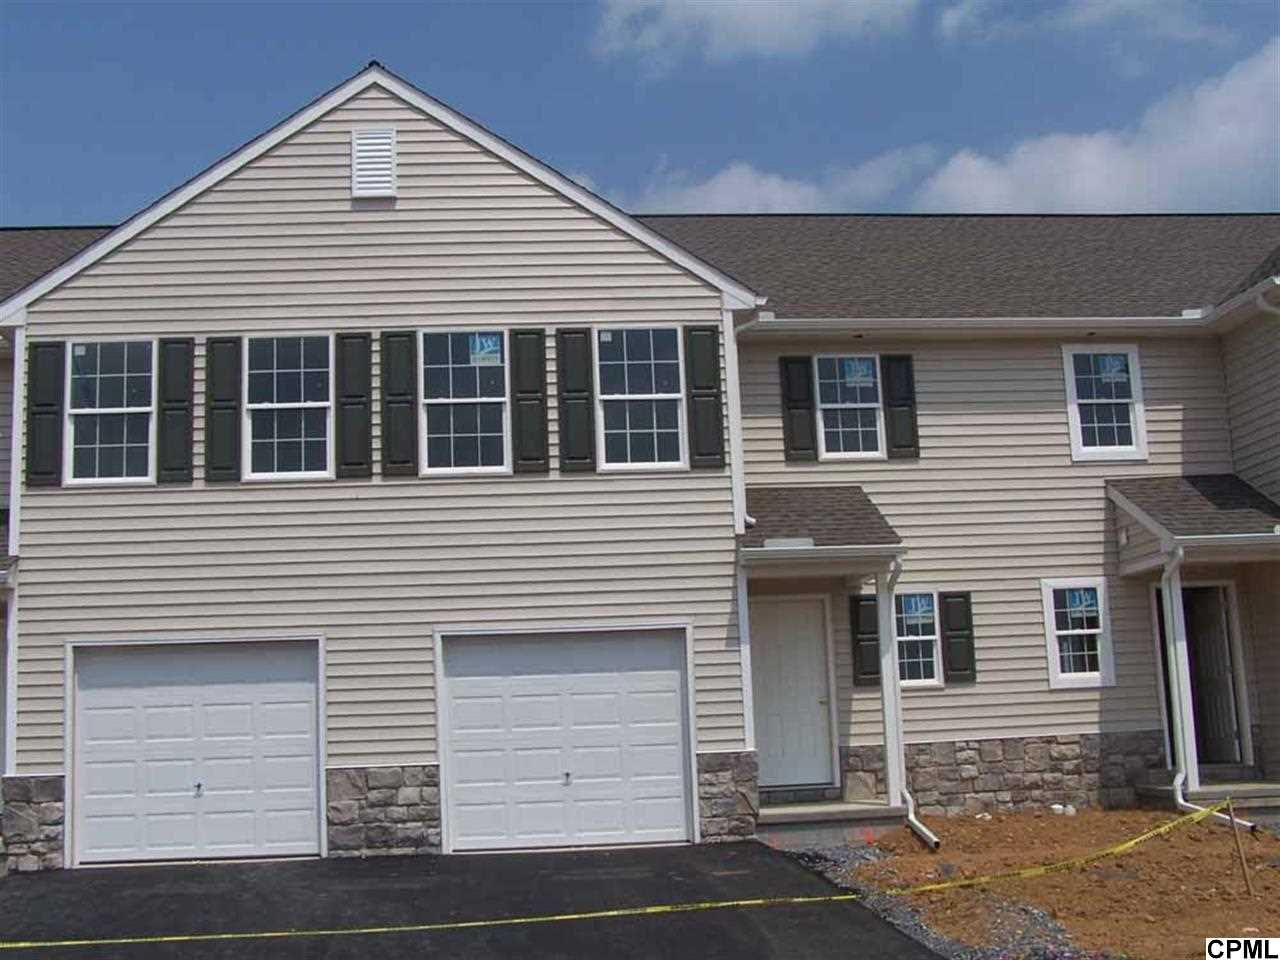 160 N Village Cir, Palmyra, PA 17078